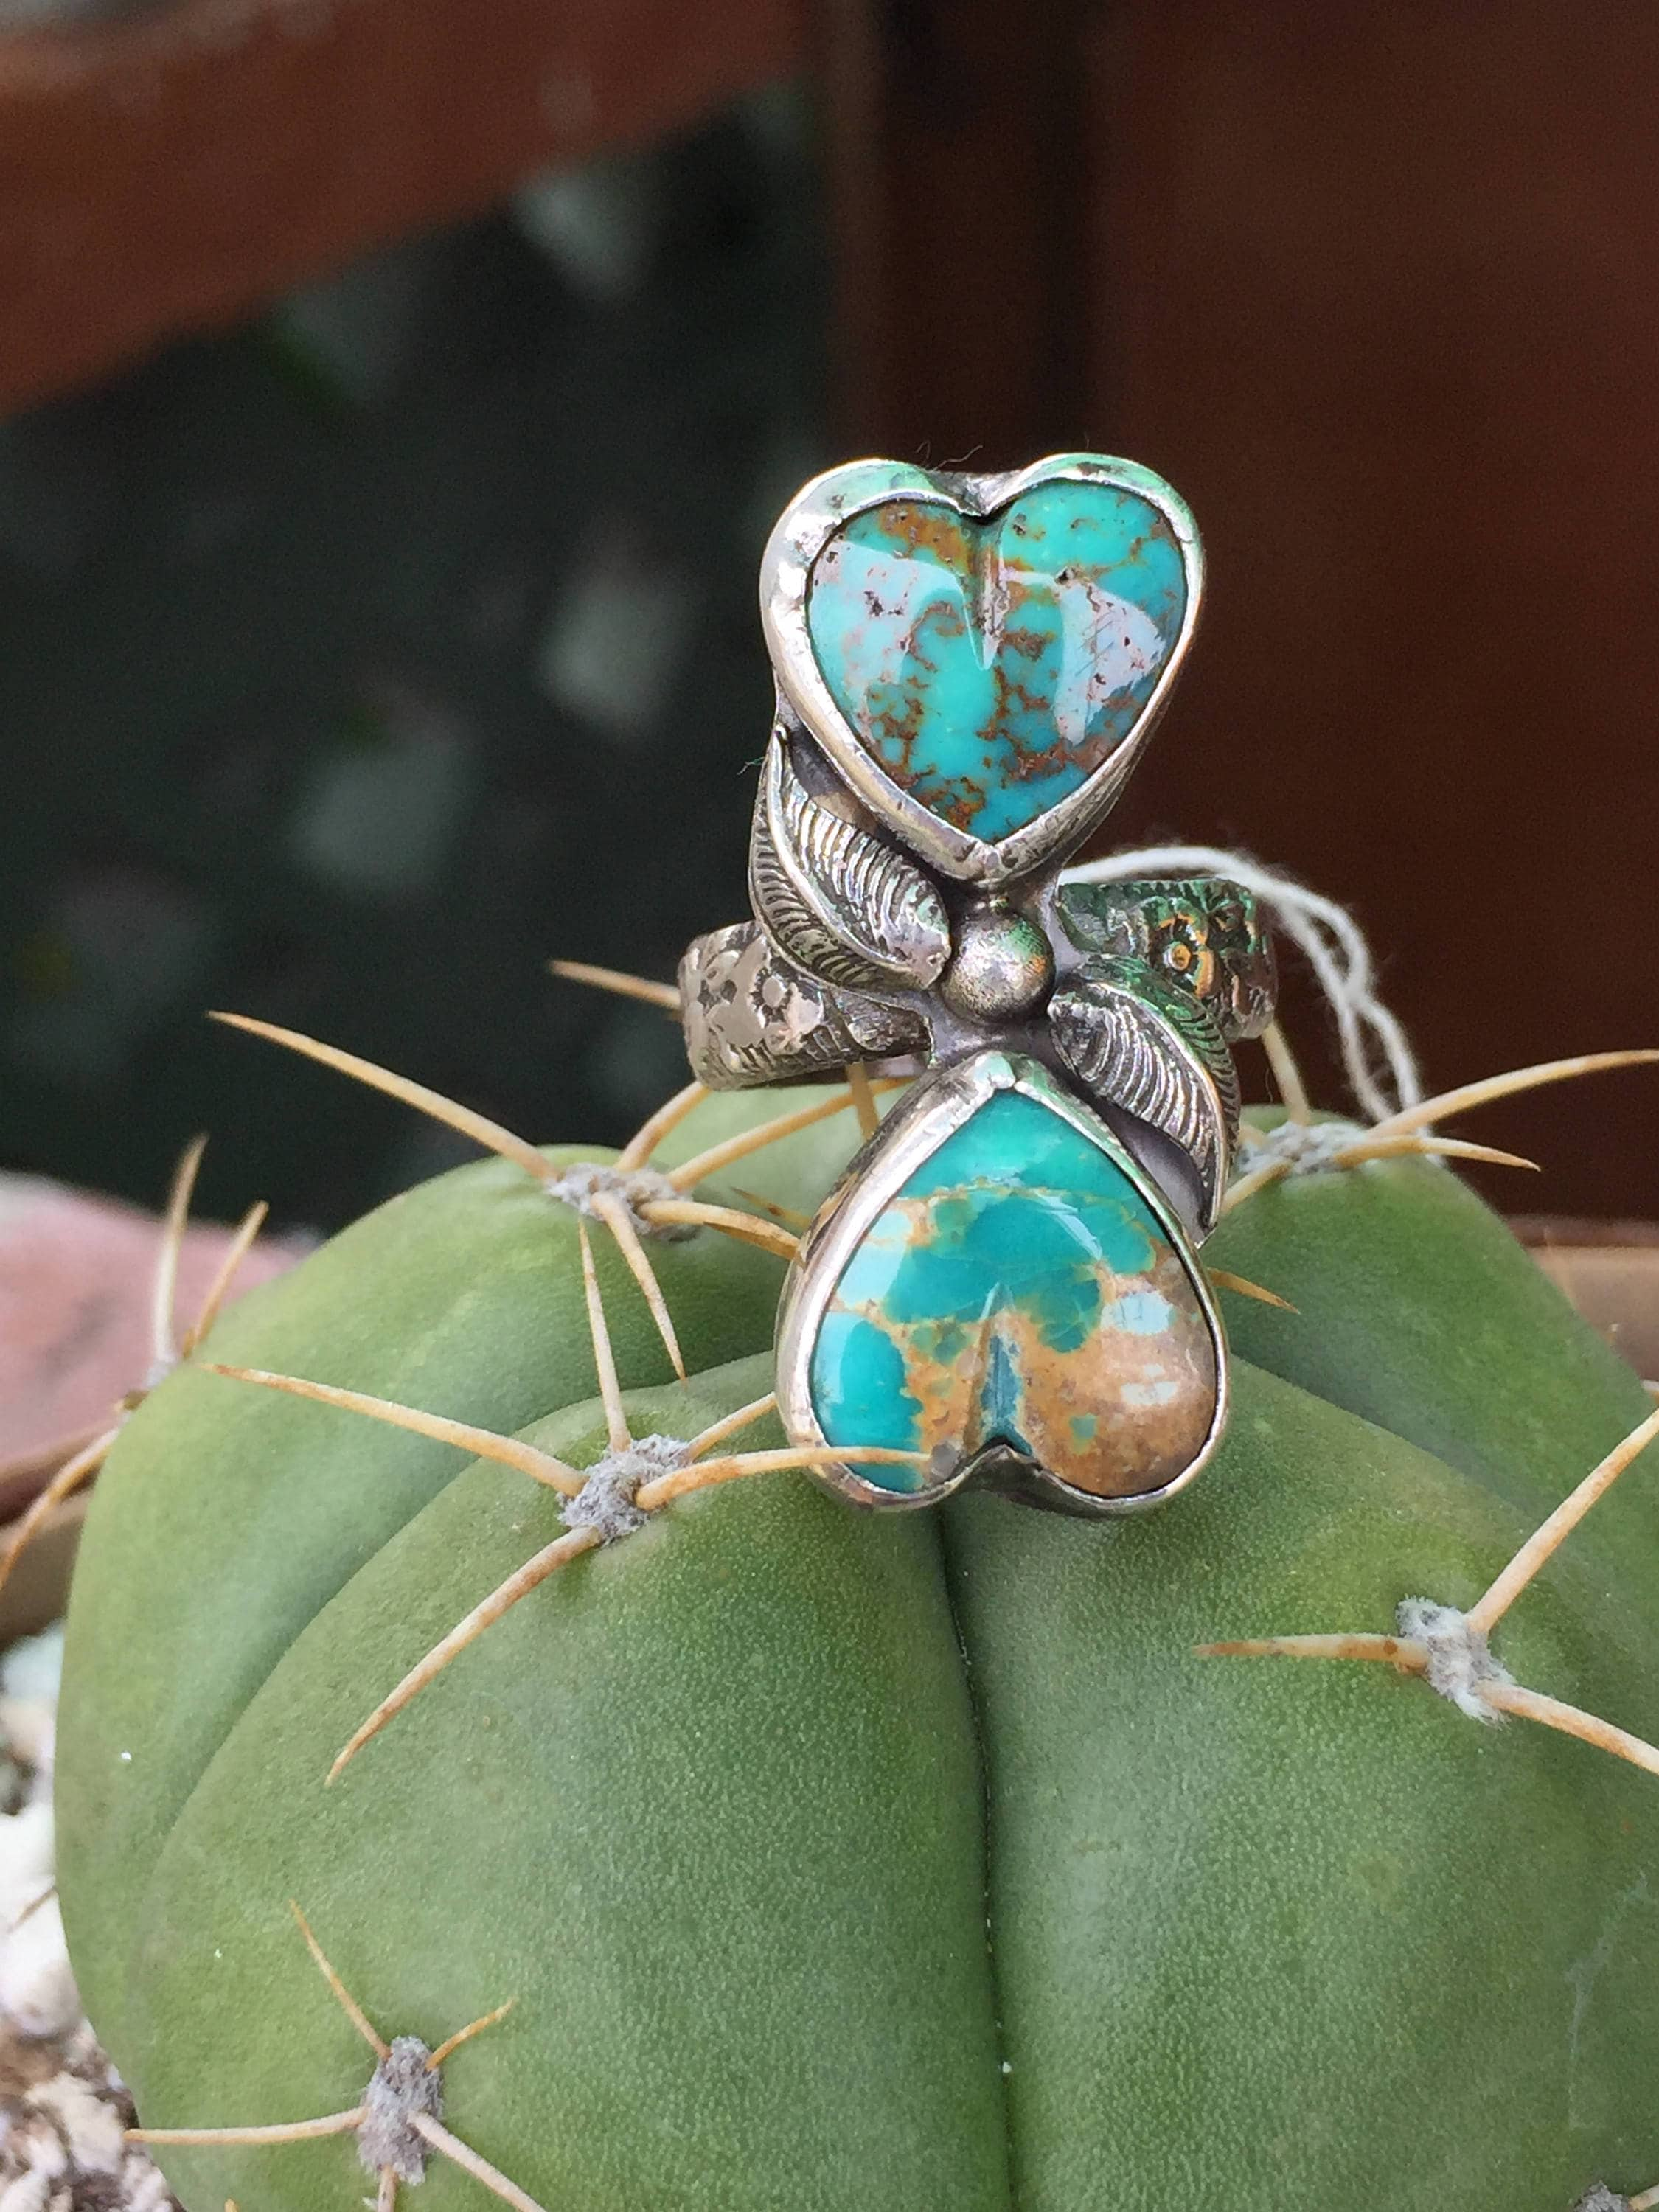 b lee front jewelry american southwest turquoise navajo ring native by size jewellery kingman